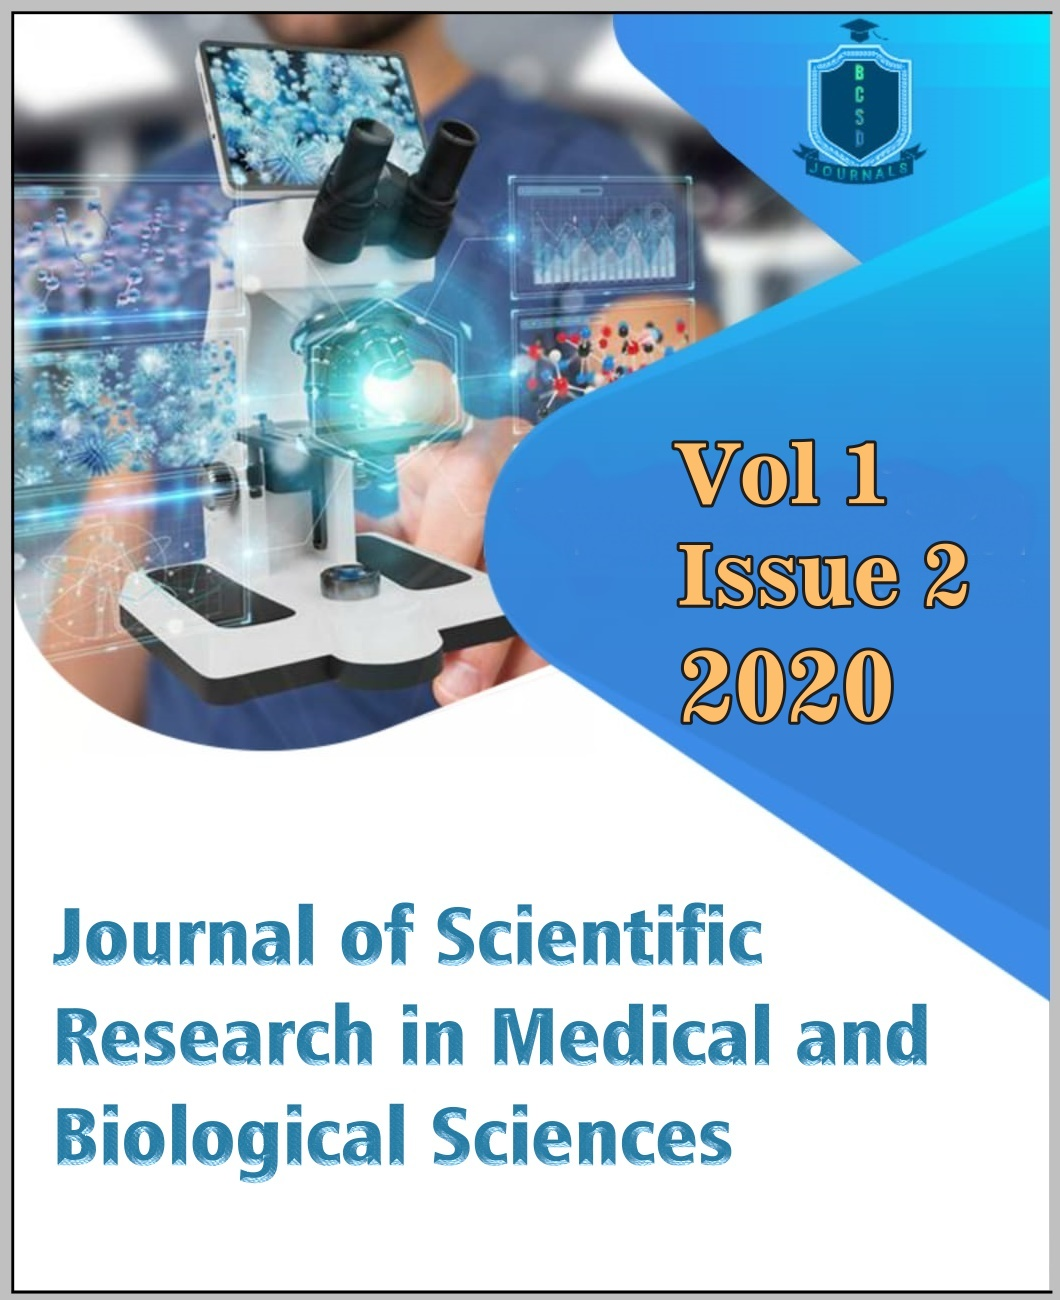 Journal of Scientific Research in Medical and Biological Sciences